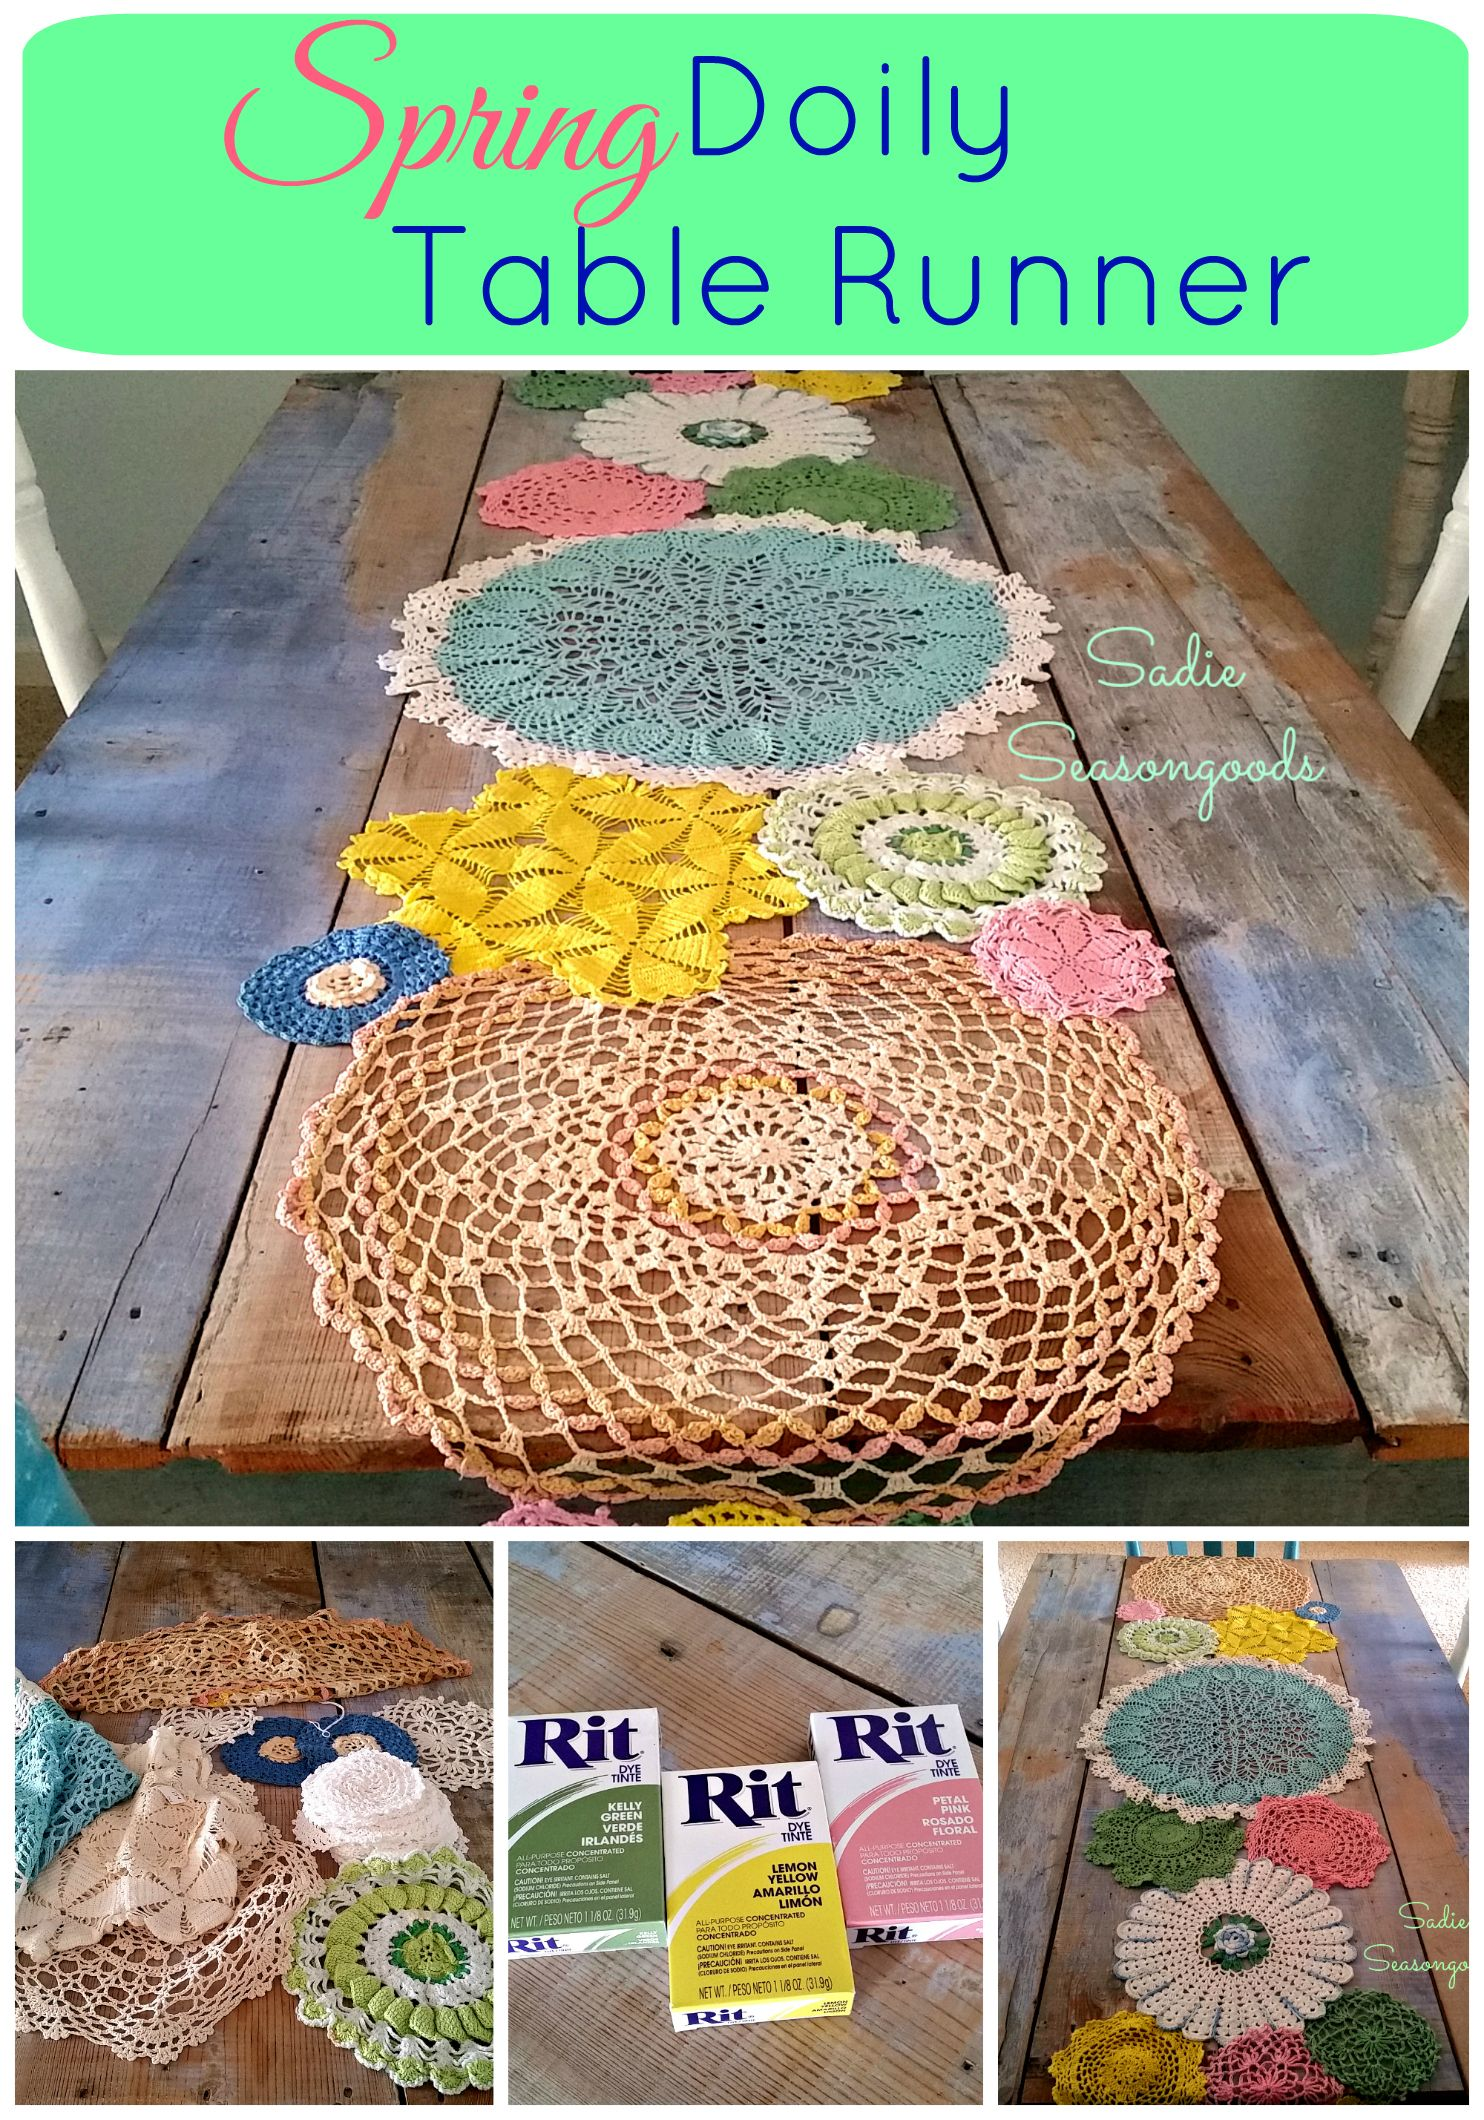 Pastel Dyed Vintage Doily Table Runner For Spring